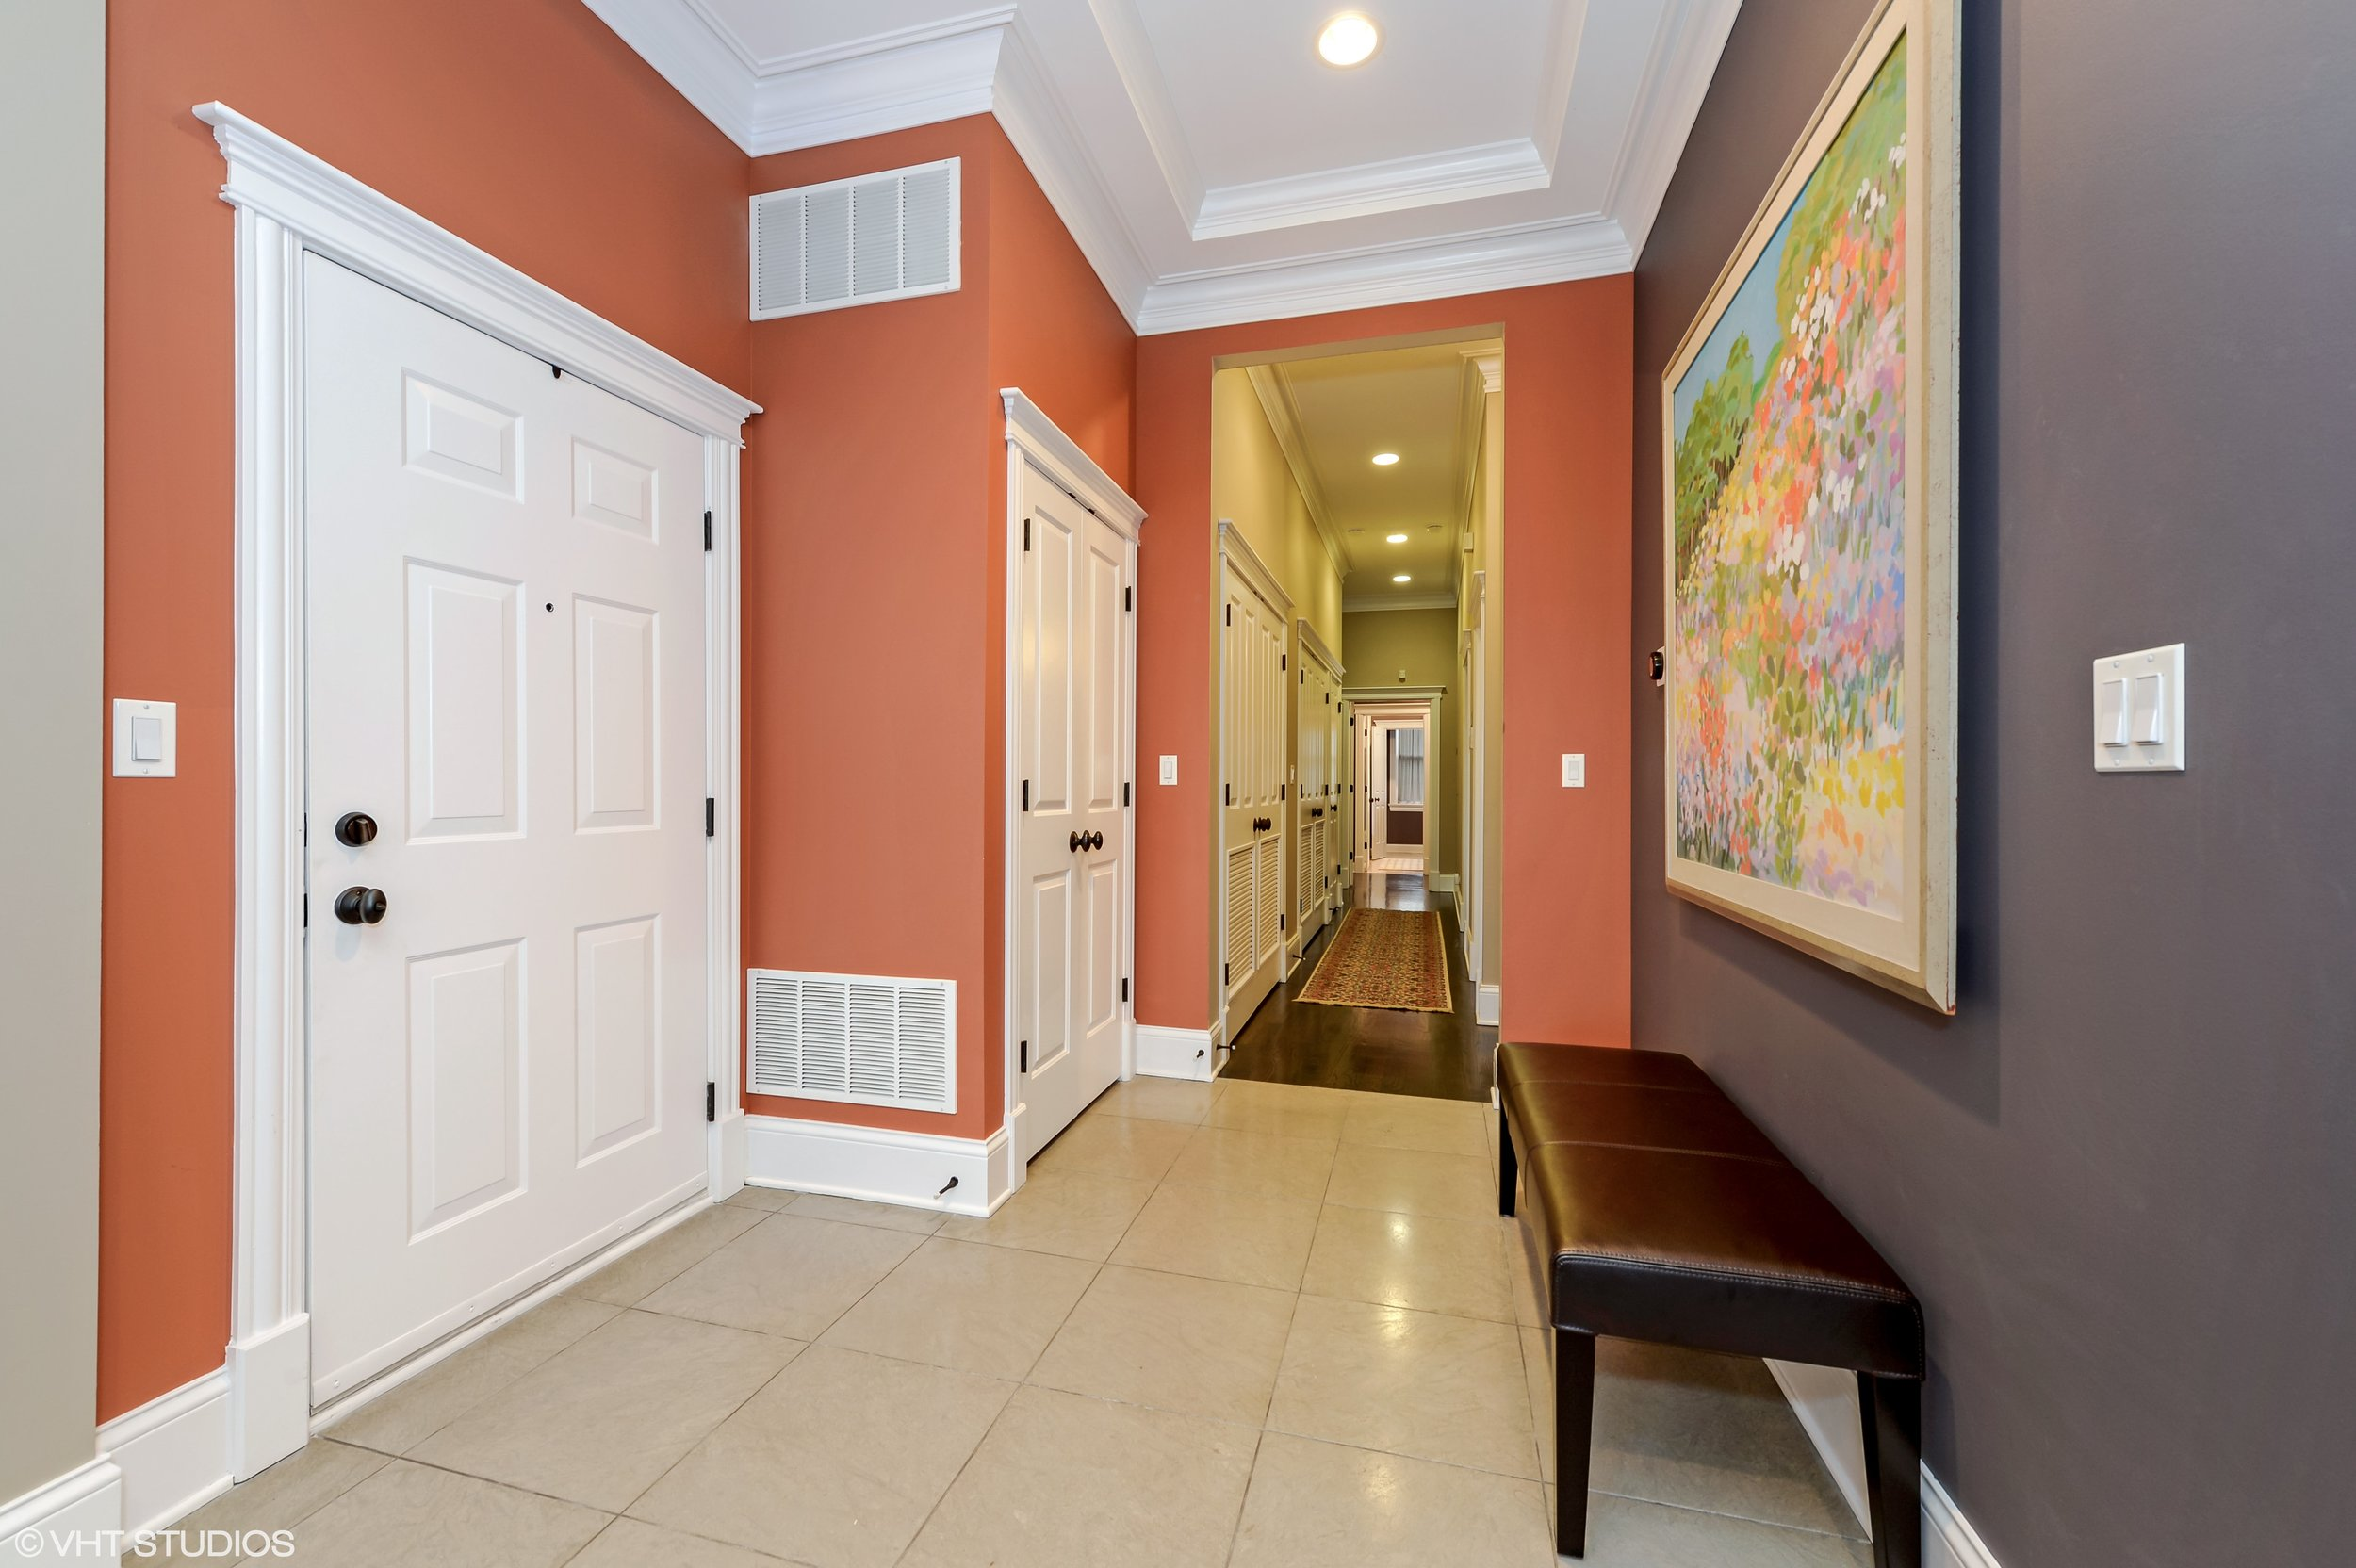 02_3330NorthAshlandAve_2_32_Foyer_HiRes.jpg